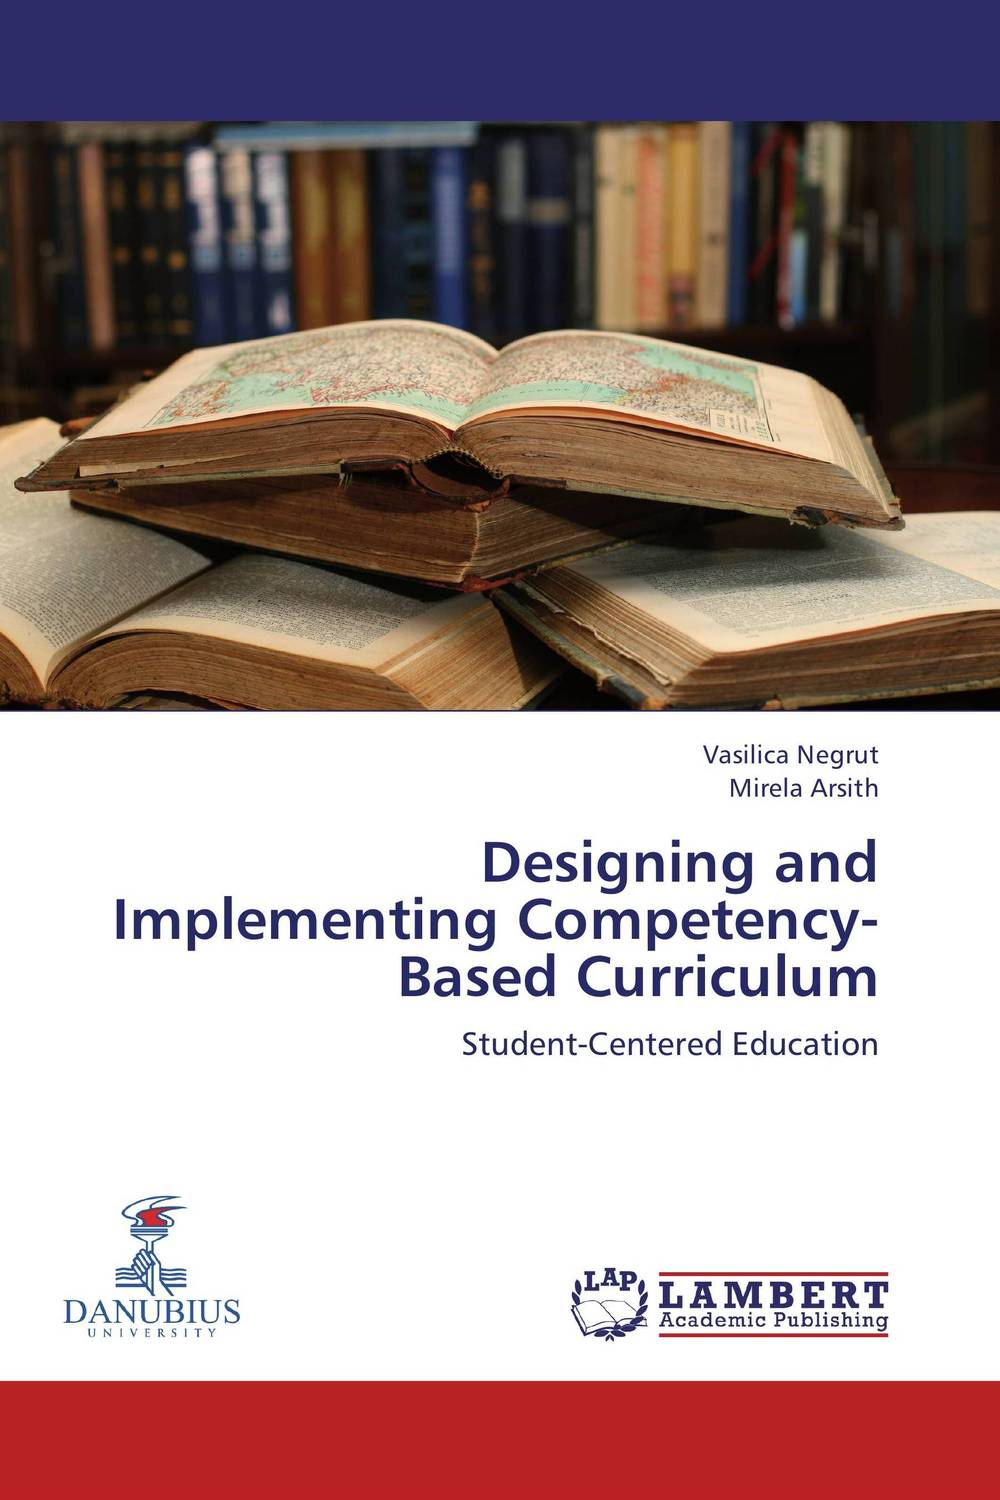 Designing and Implementing Competency-Based Curriculum kumar rakesh subhangi dutta and kumara shama handbook on implementing gender recognition